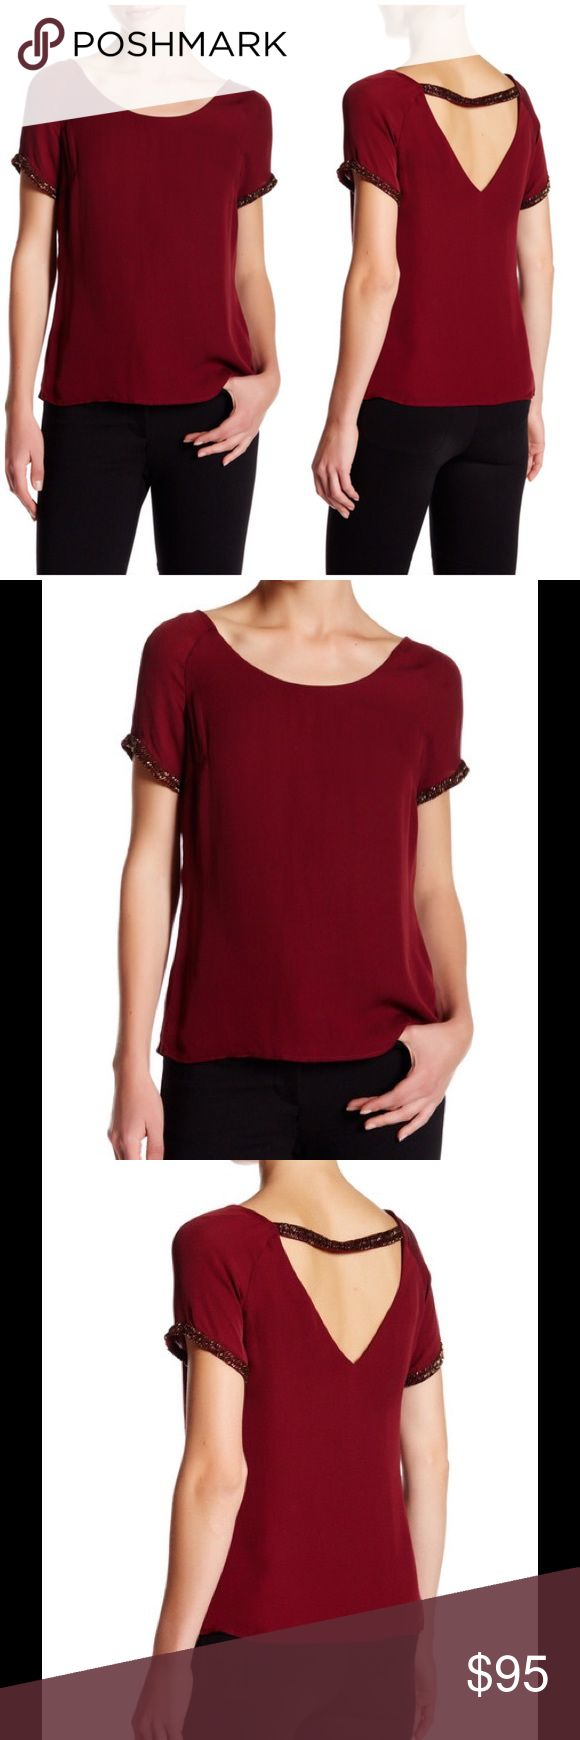 "🆕 Rebecca Minkoff Zoey silk blouse merlot - Scoop neck - Short sleeves - Back cutout - Bead embellished trim - Lined - Approx. 23"" length - Imported Fiber Content 100% silk Care Dry clean Fit: this style fits true to size. Brand new with tag. Retail price $328. Rebecca Minkoff Tops Blouses"